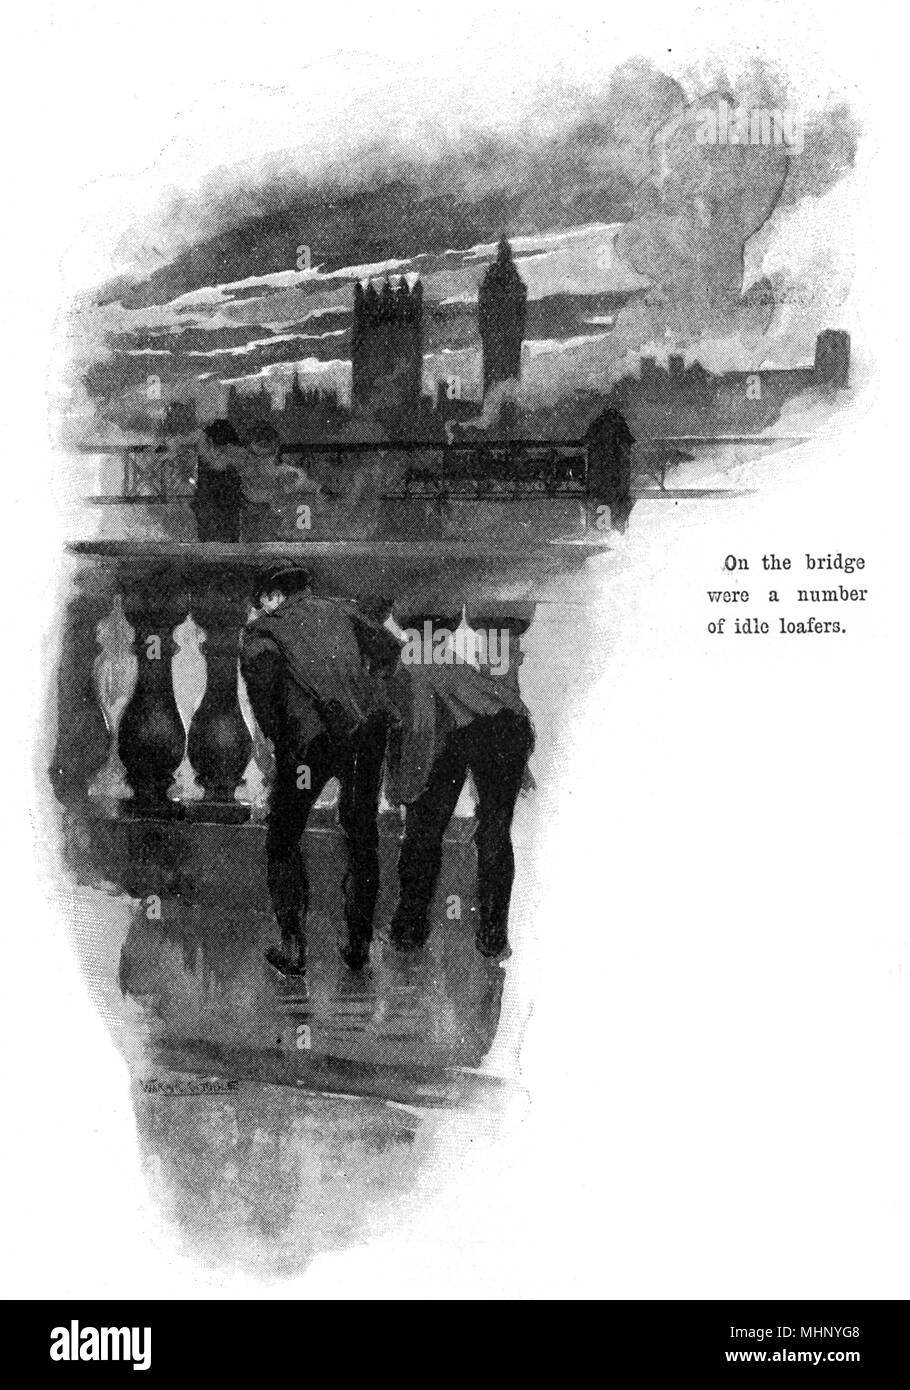 On Waterloo Bridge, London - a couple of 'idle loafers' watch a 'curious brown scum' that came drifting down the stream in places. The War of the Worlds is a science fiction novel by English author H. G. Wells (1866-1946). This plate comes from the first serialised version, published in 1897 by Pearson's Magazine in the UK.     Date: 1897 - Stock Image